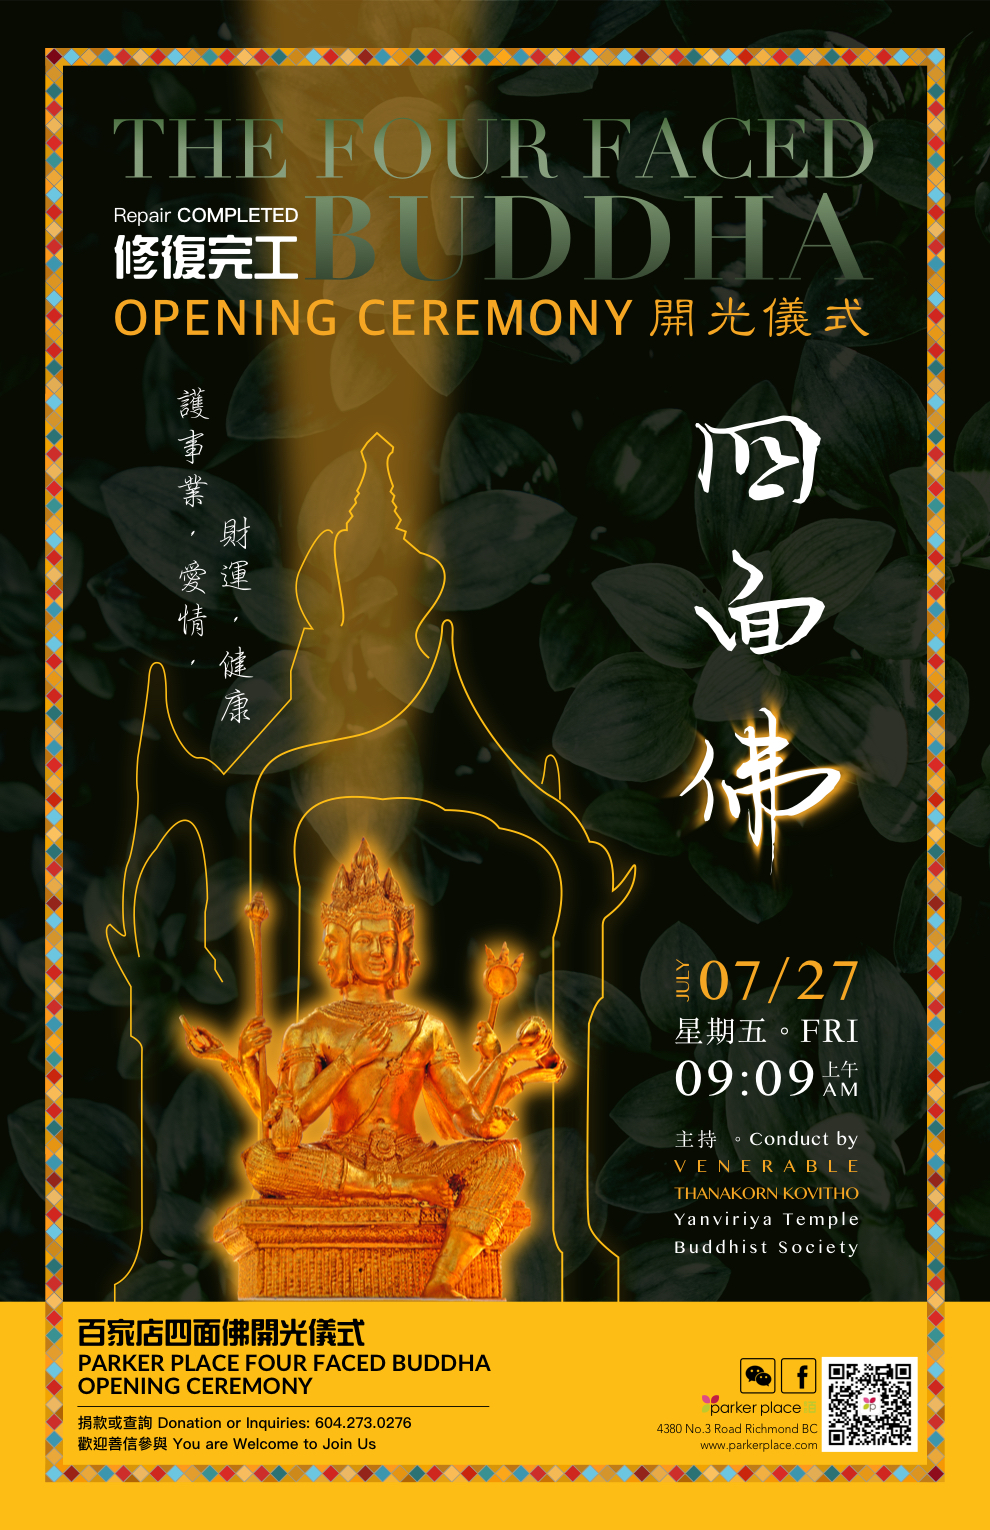 The Four Face Buddha Opening Ceremony 四面佛開光儀式